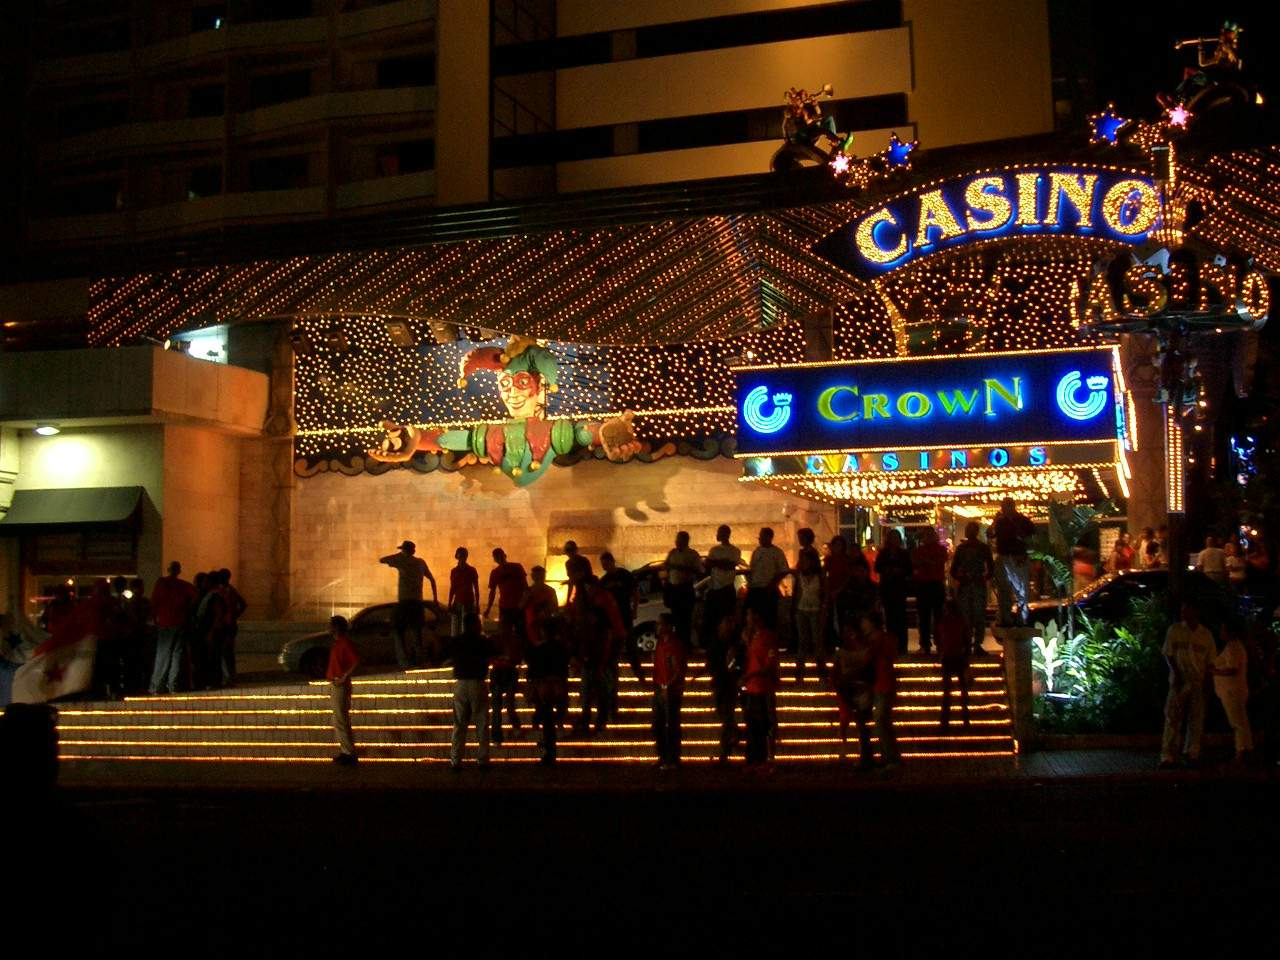 Crown casino panama city